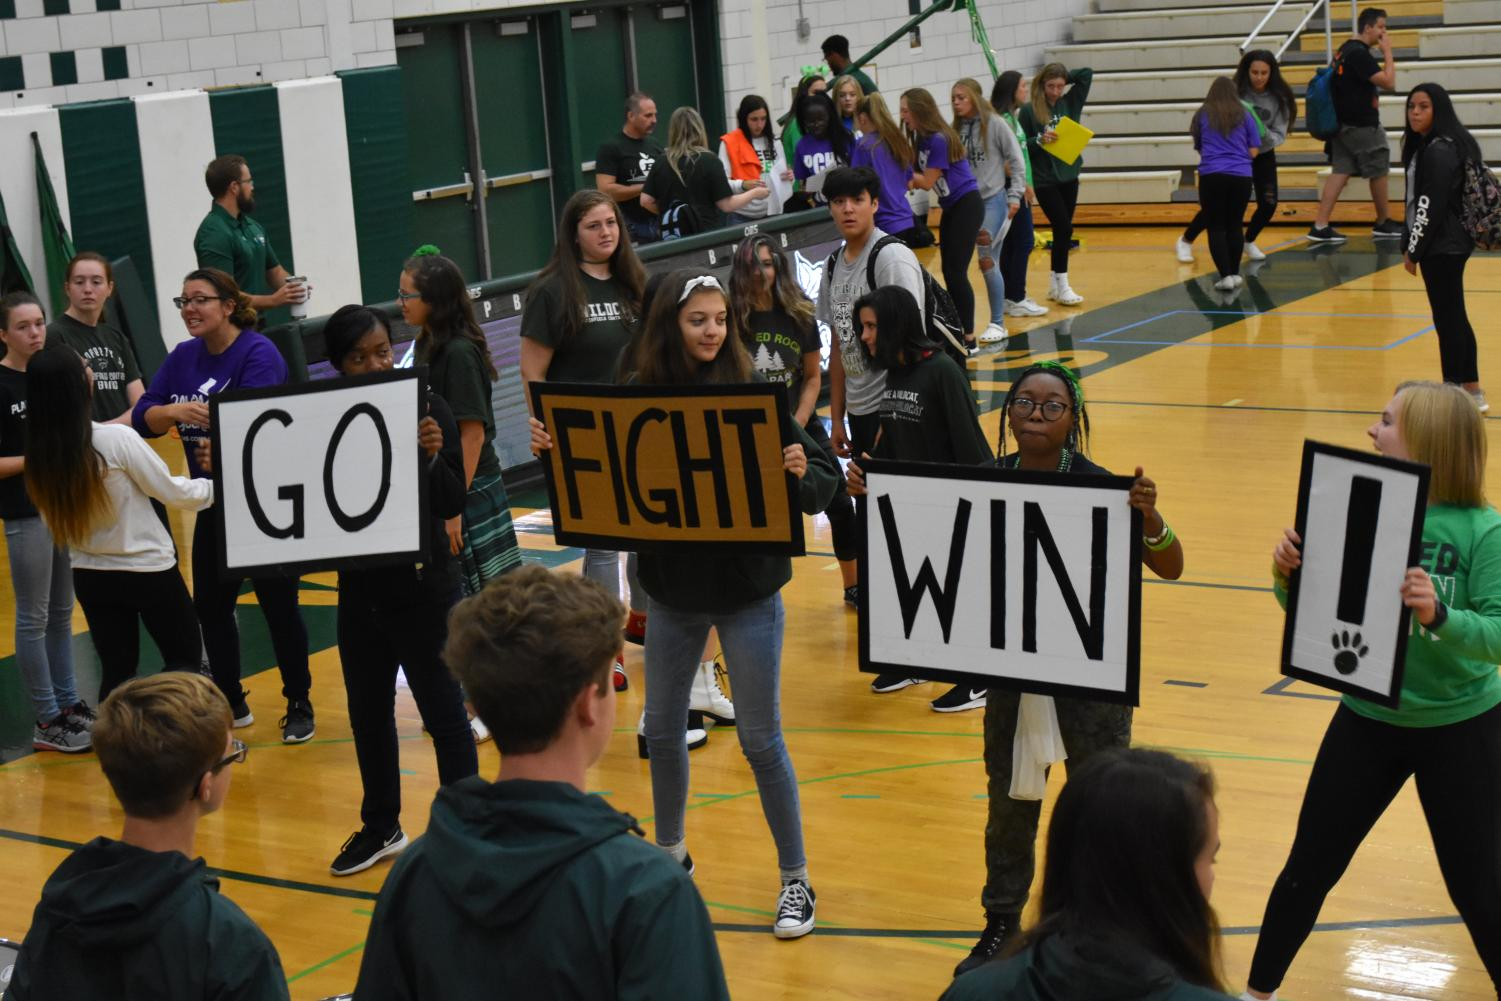 Band Drum Majors Tiara Guider, senior; Paige Gieseke, senior; Jade Price, junior; and Georgia Sigler, senior lead the band in a song while dancing with signs to keep rhythm.